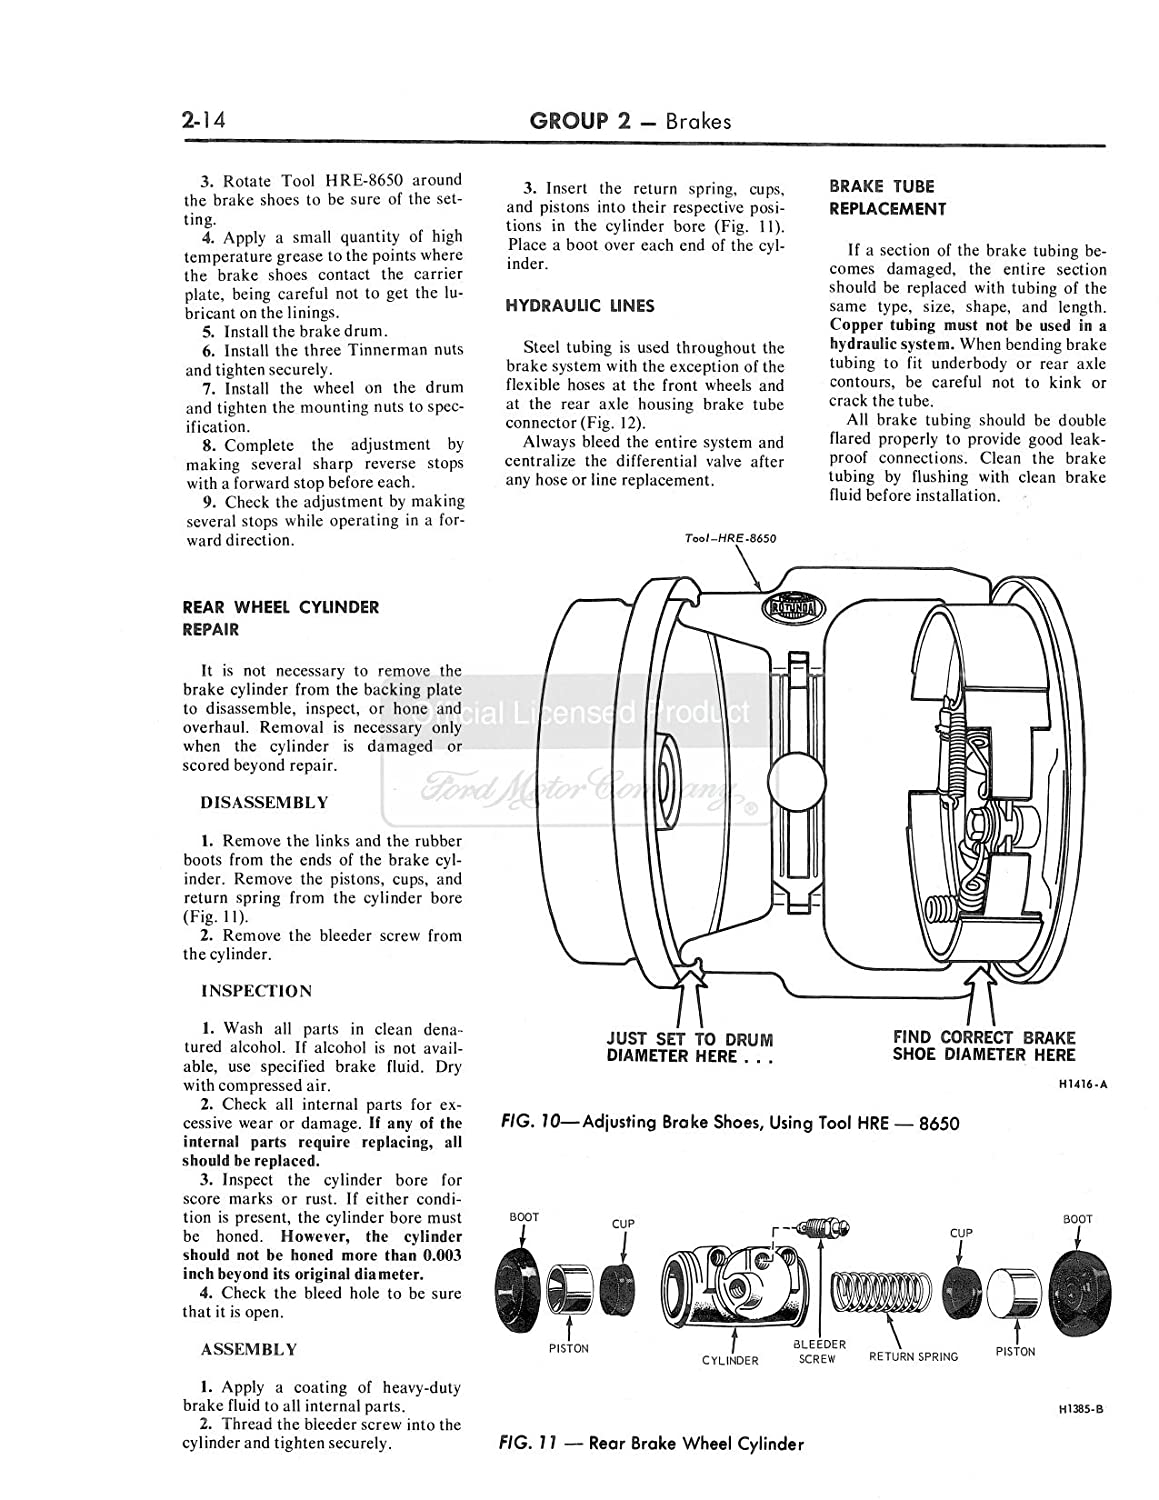 1966 Lincoln Continental Shop Service Repair Manual Book Engine Diagram Electrical Automotive